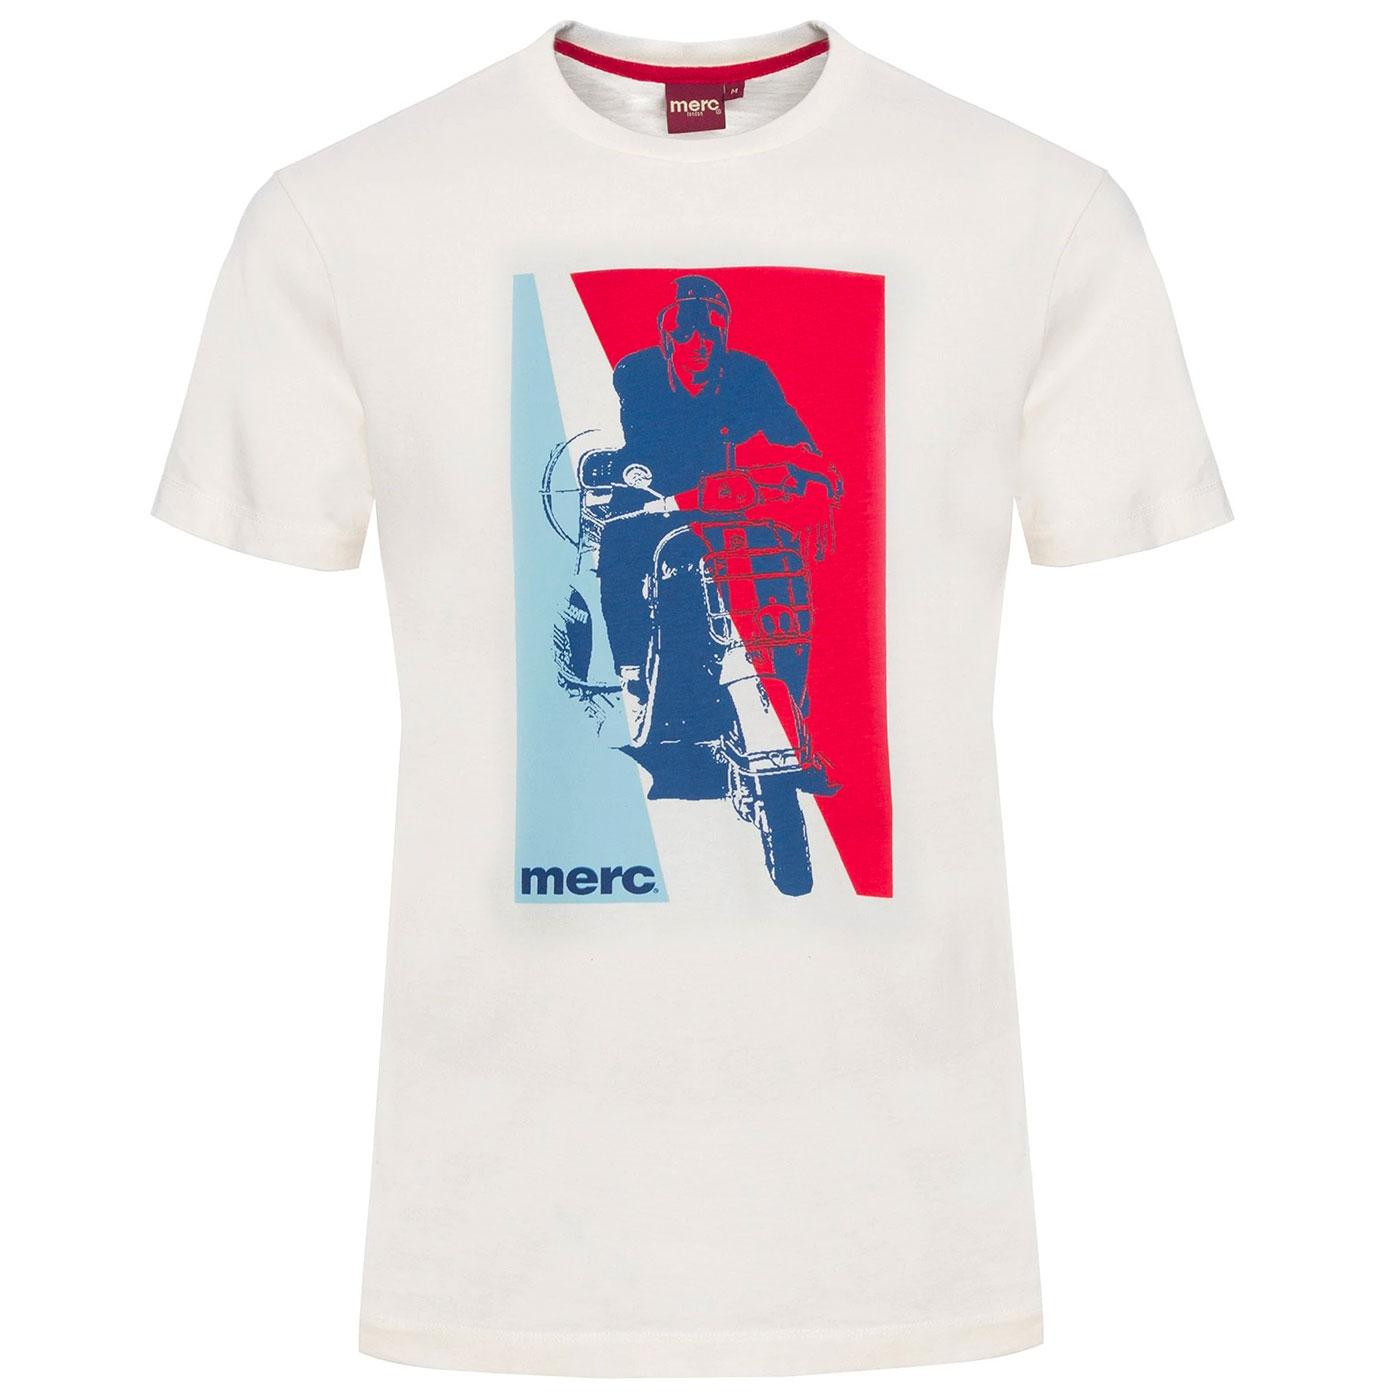 Glynde MERC Retro 60s Scooter Graphic T-Shirt